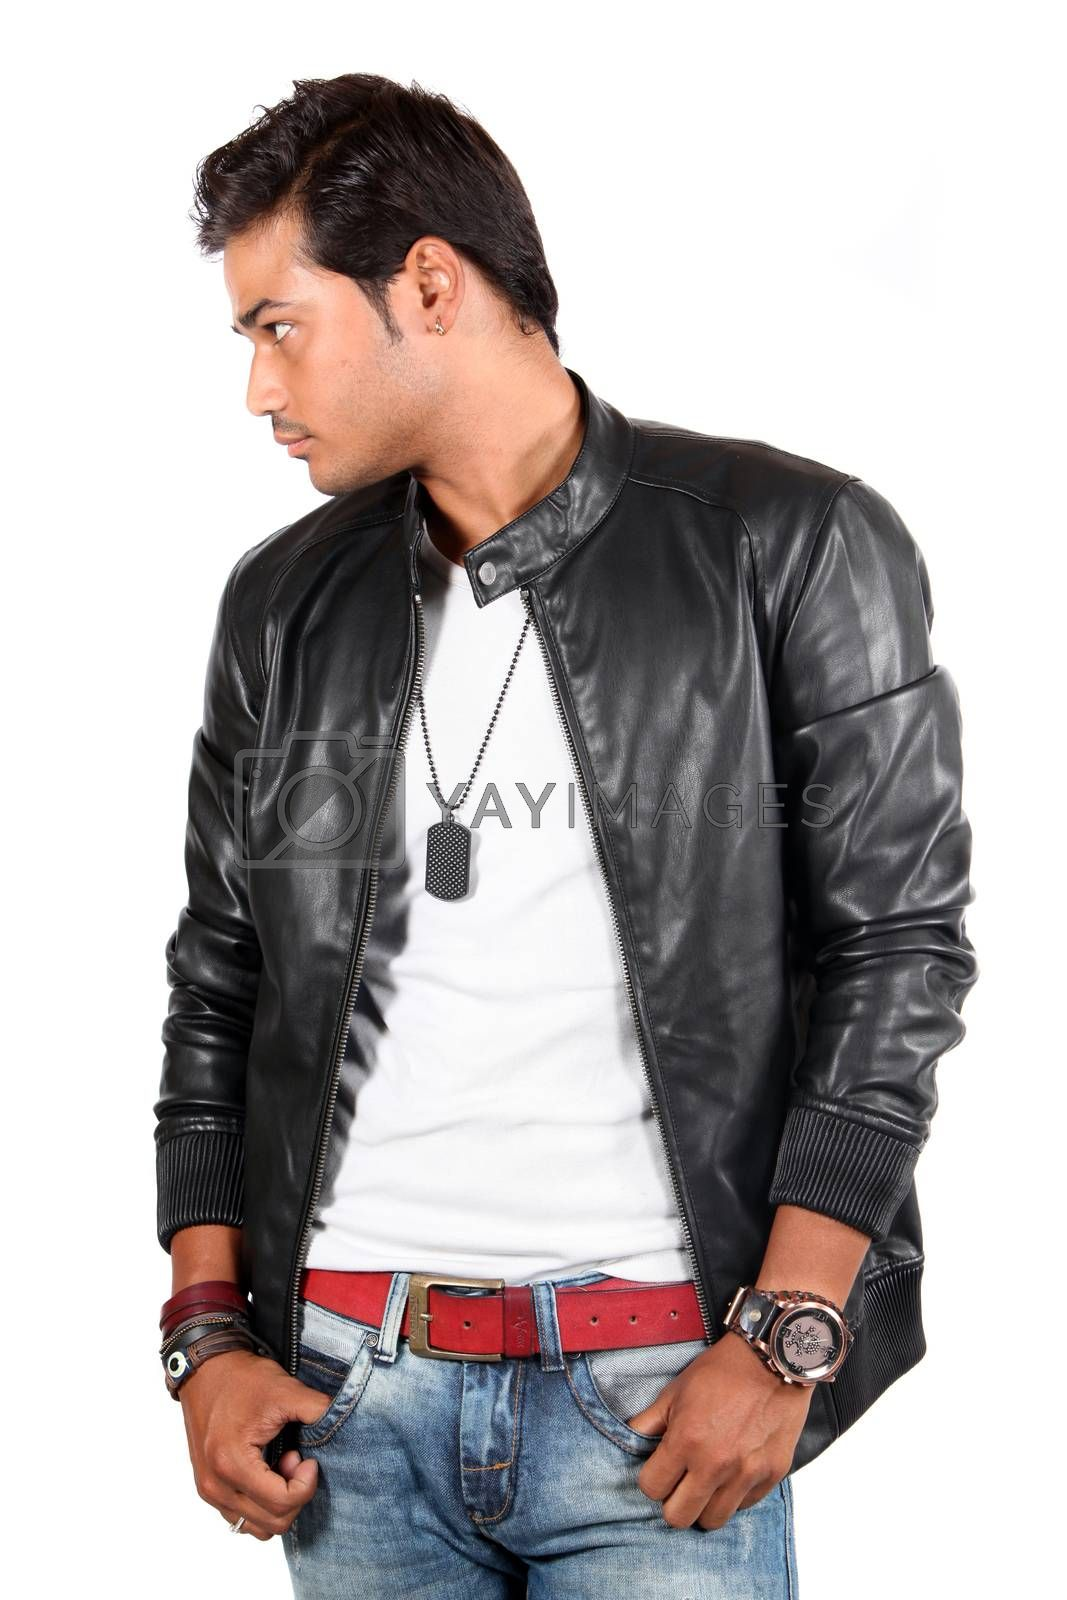 A young India male model posing in a leather jacket, on white studio background.